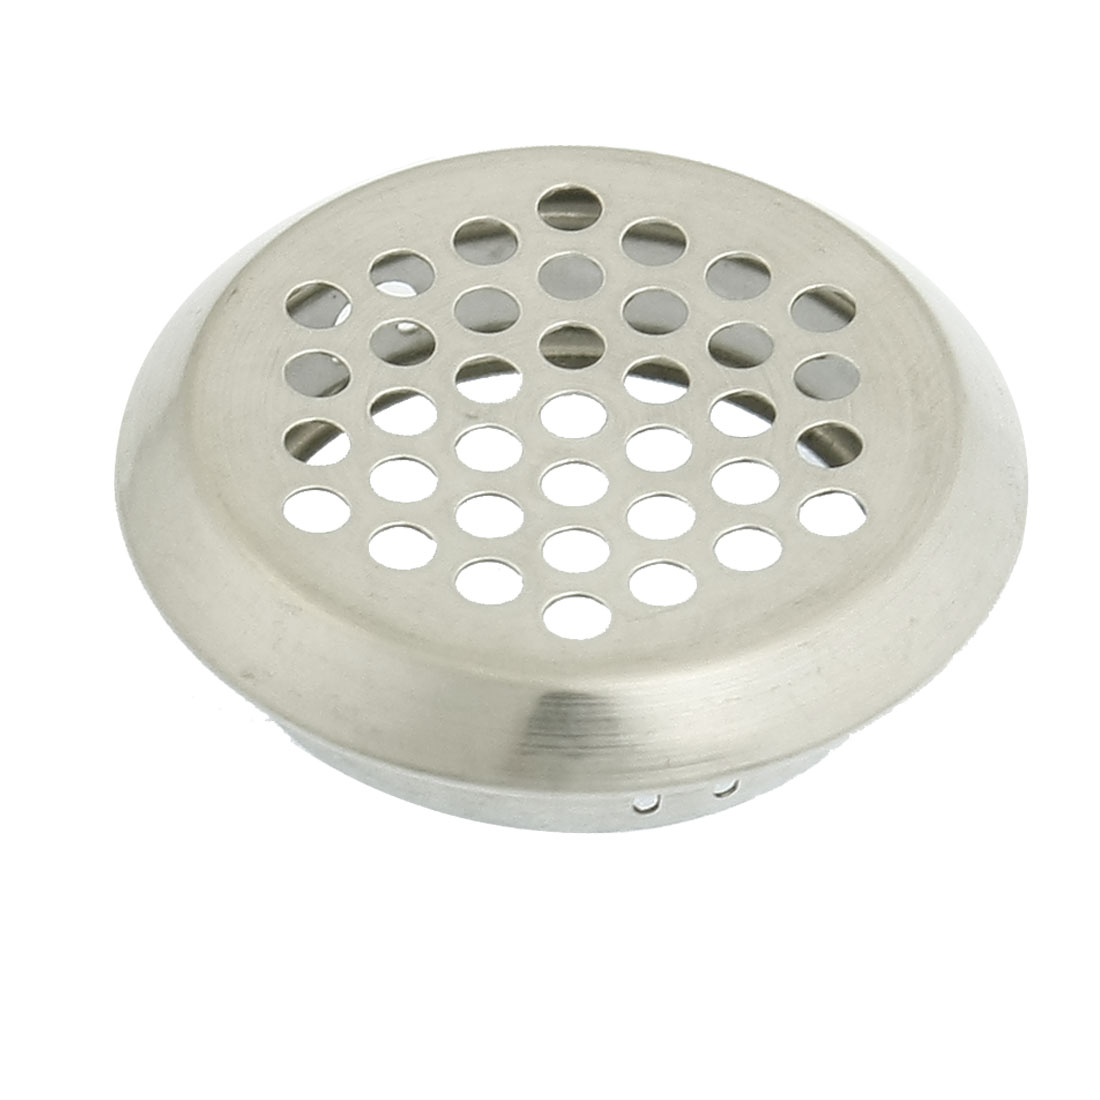 Stainless Steel 35mm Diameter 8mm Height Kitchen Sink Basin Drain Strainers